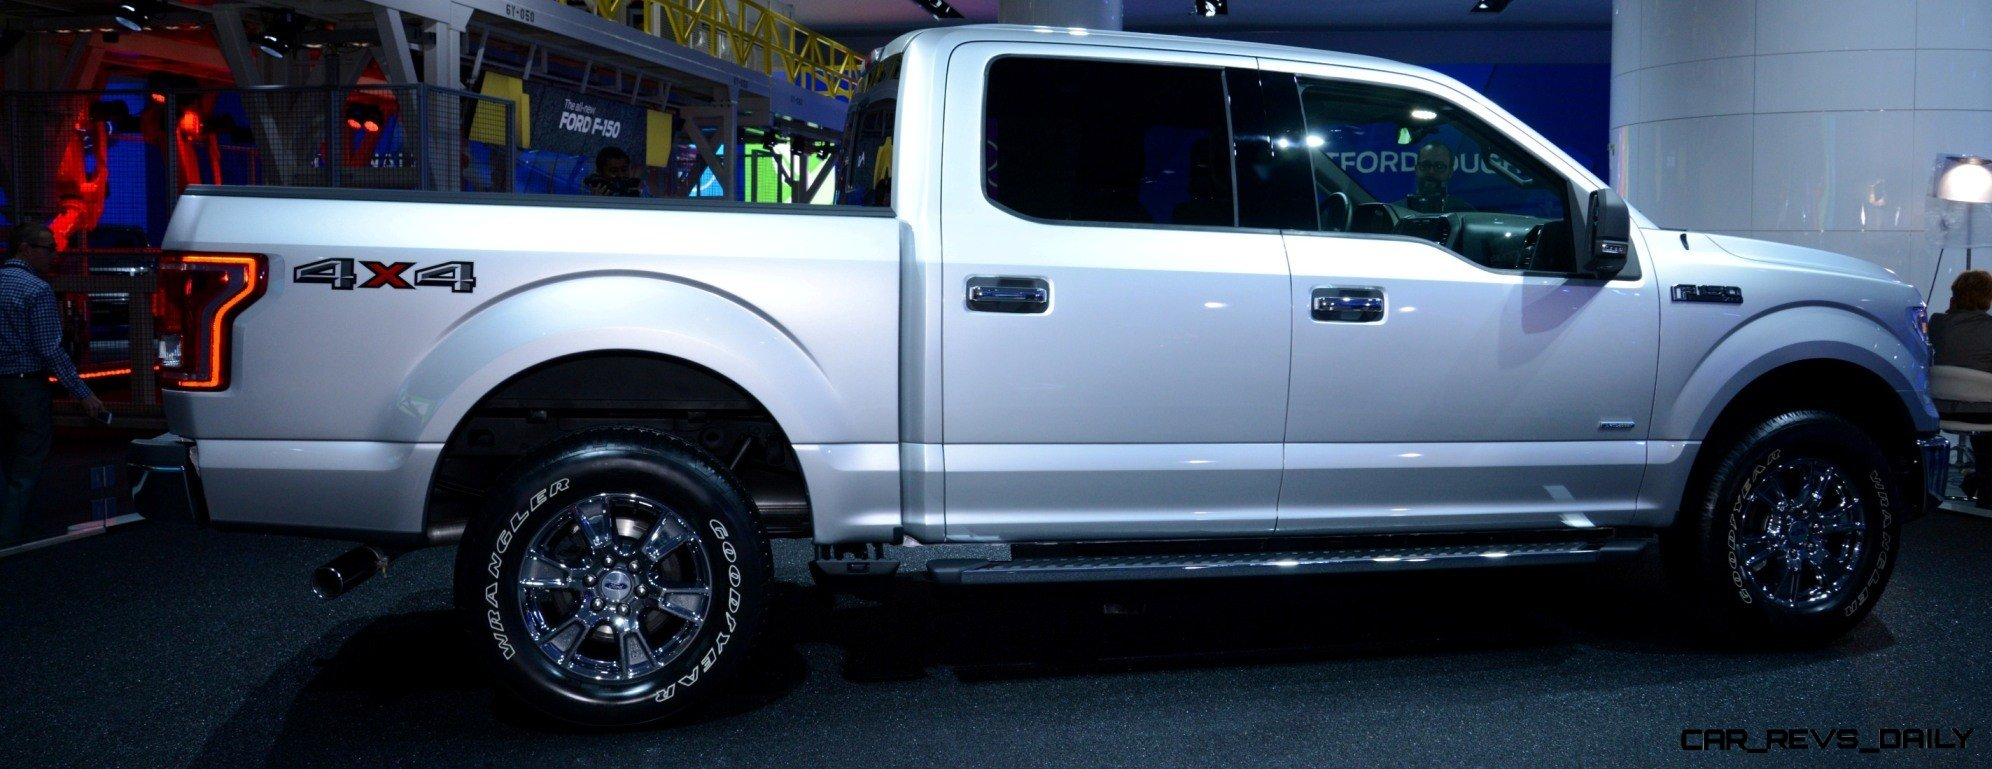 2015 FORD F-150 Almost Unbelieveably New - $14B Golden Goose 19